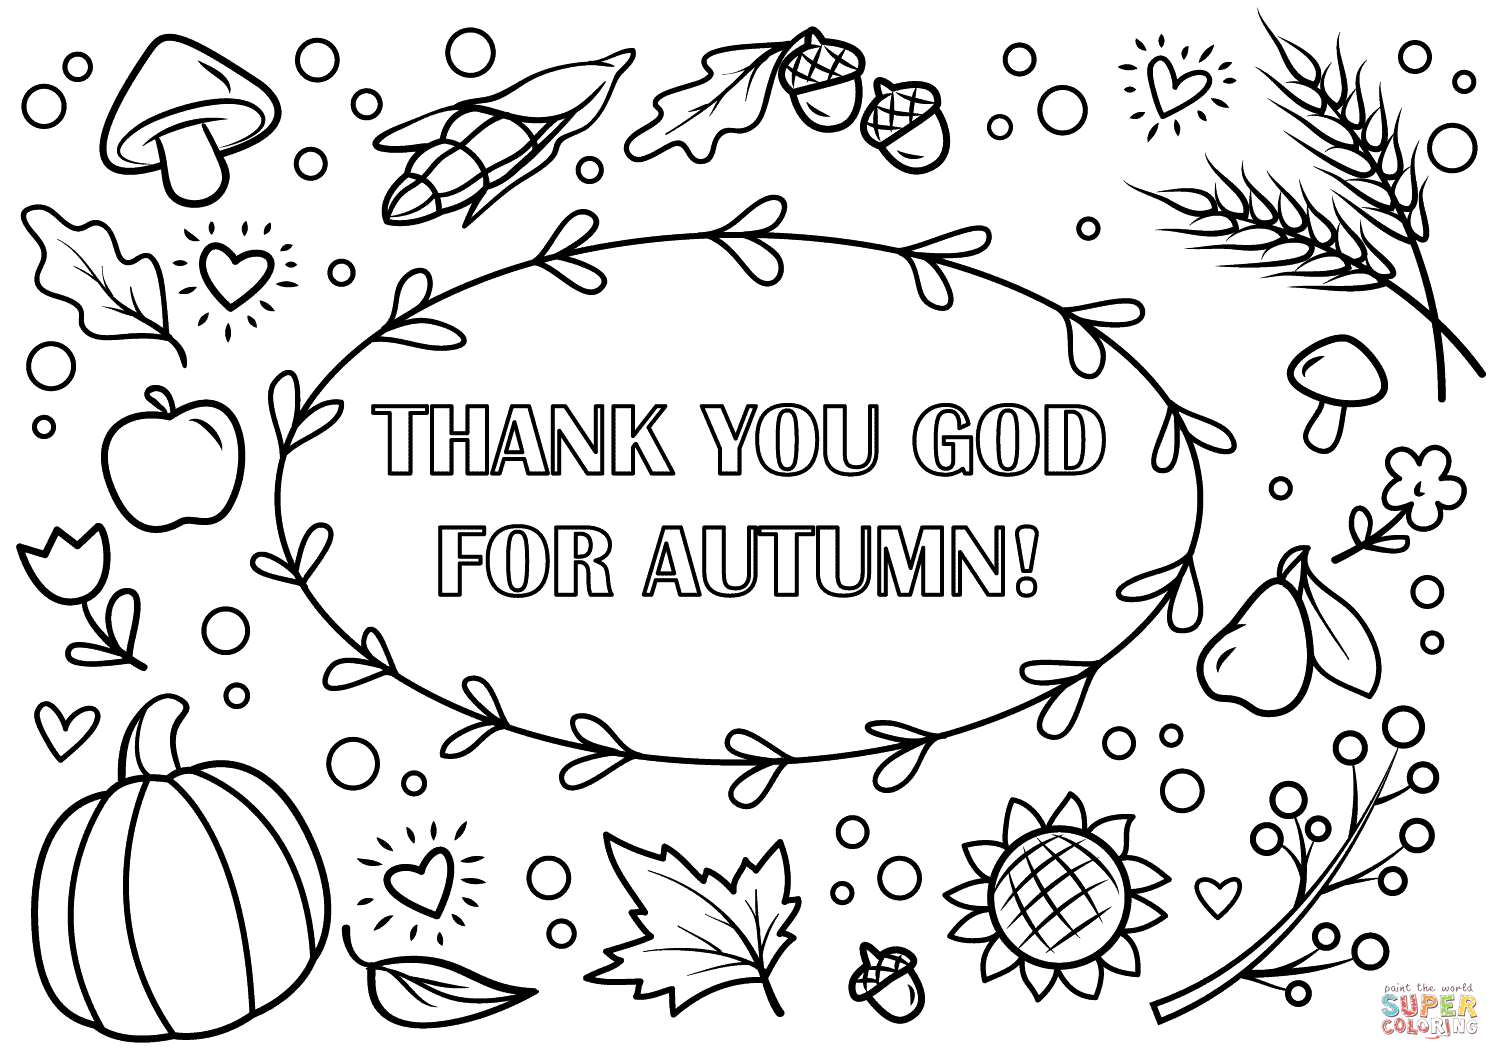 Thank You God For Autumn! Coloring Page | Free Printable Coloring Pages - Free Printable Autumn Coloring Sheets